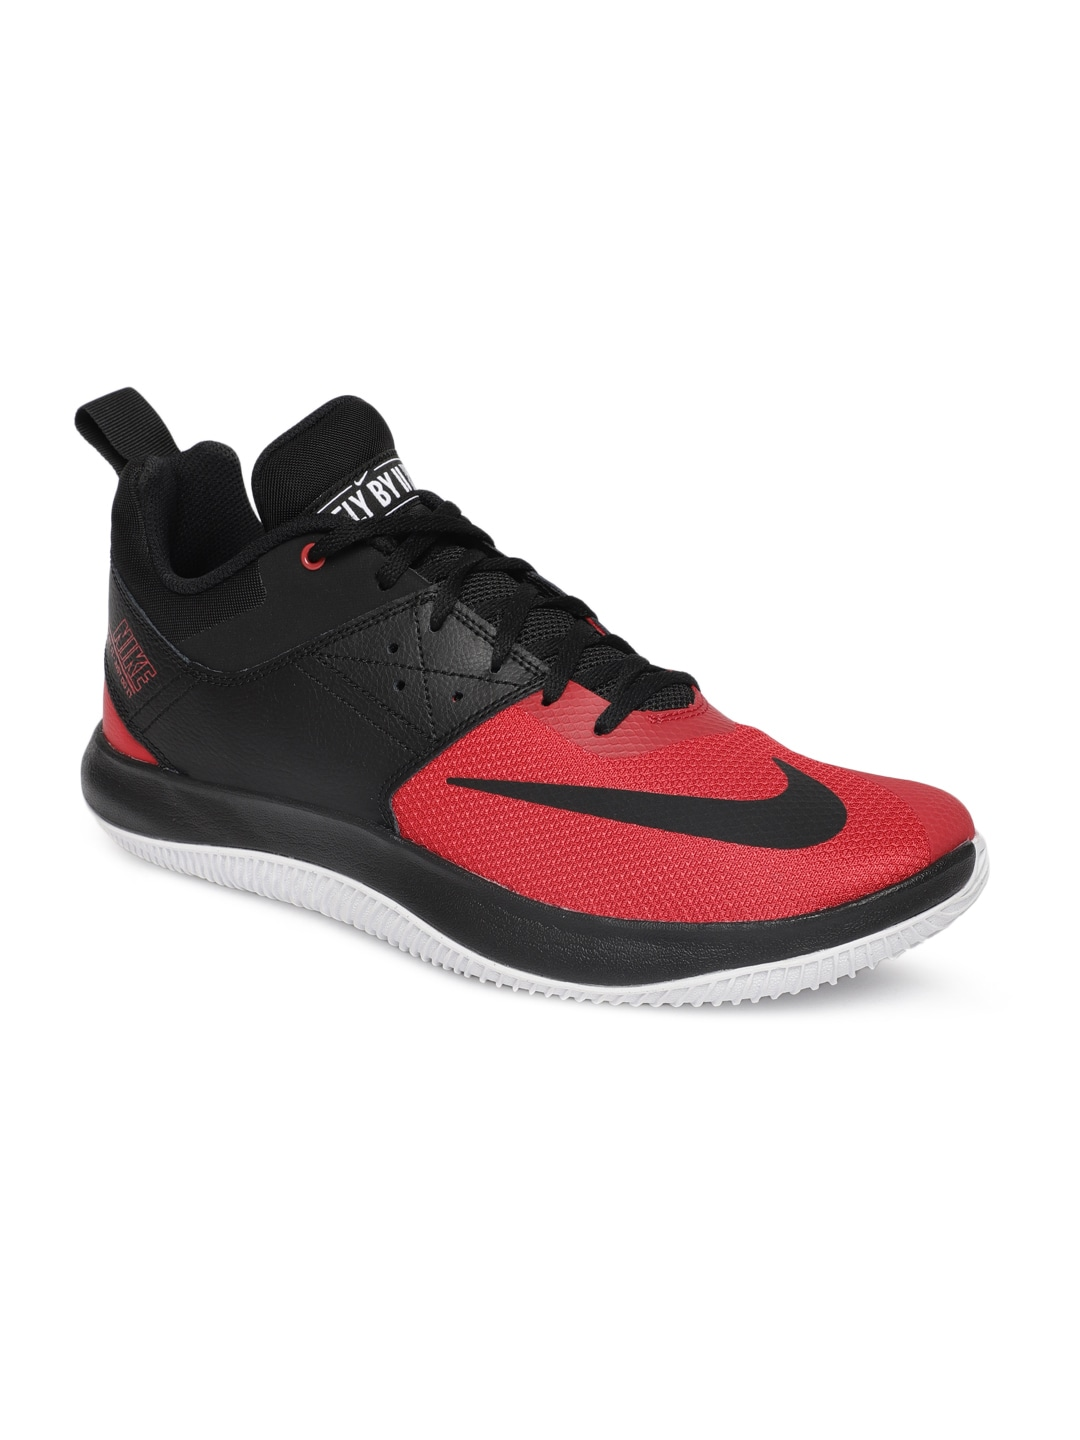 Nike Shoes - Buy Nike Shoes for Men   Women Online  6ca2934b0a43